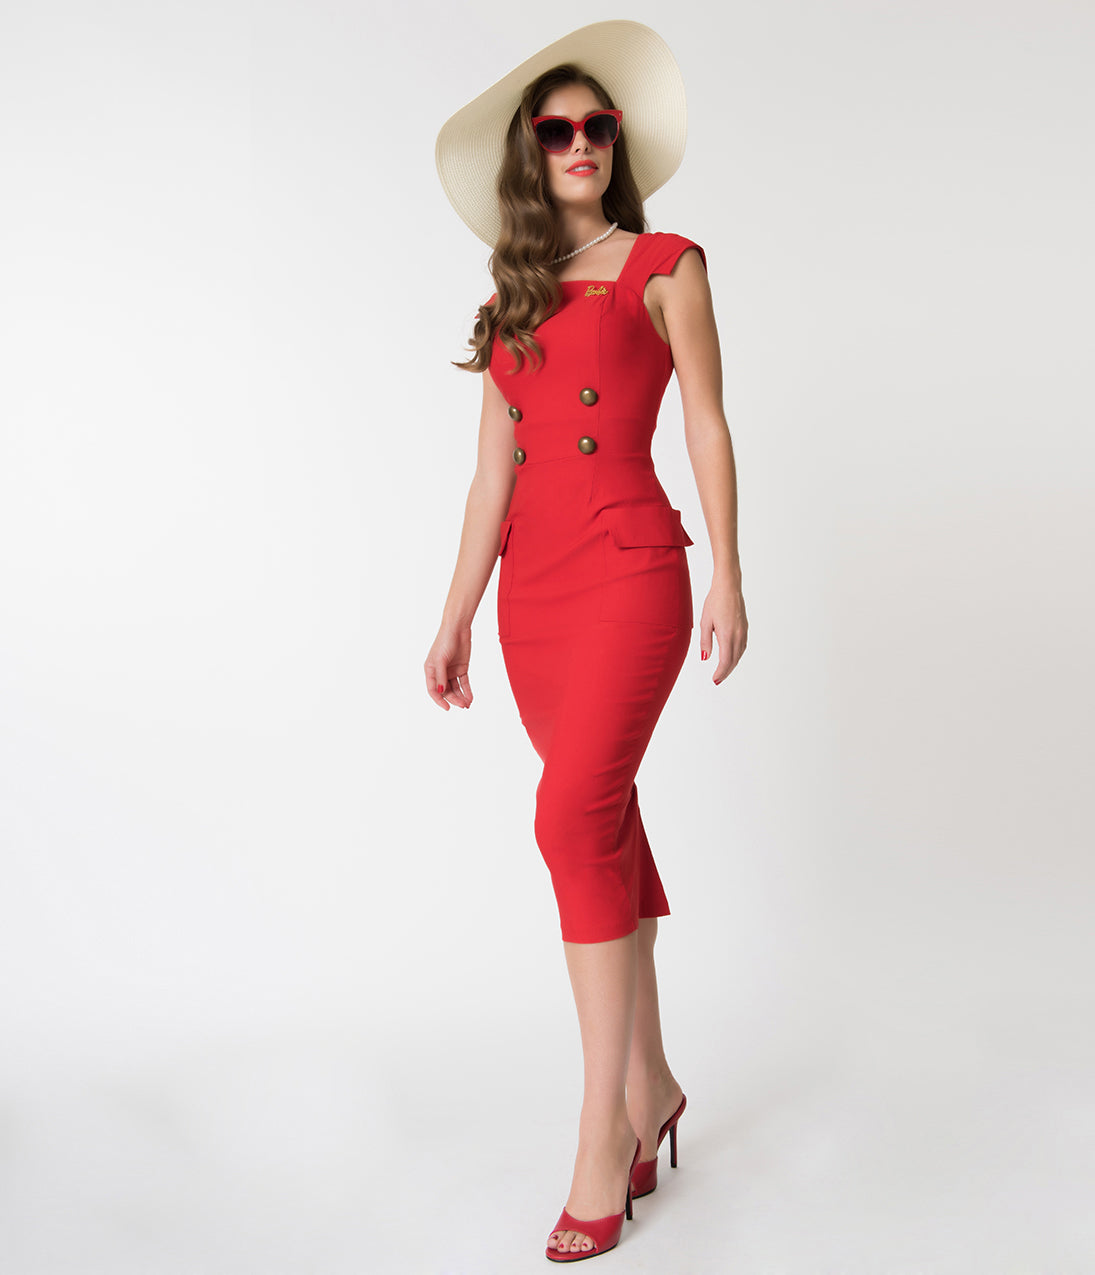 Rockabilly Dresses | Rockabilly Clothing | Viva Las Vegas Barbie X Unique Vintage Red Sheath Sensation Wiggle Dress $63.00 AT vintagedancer.com